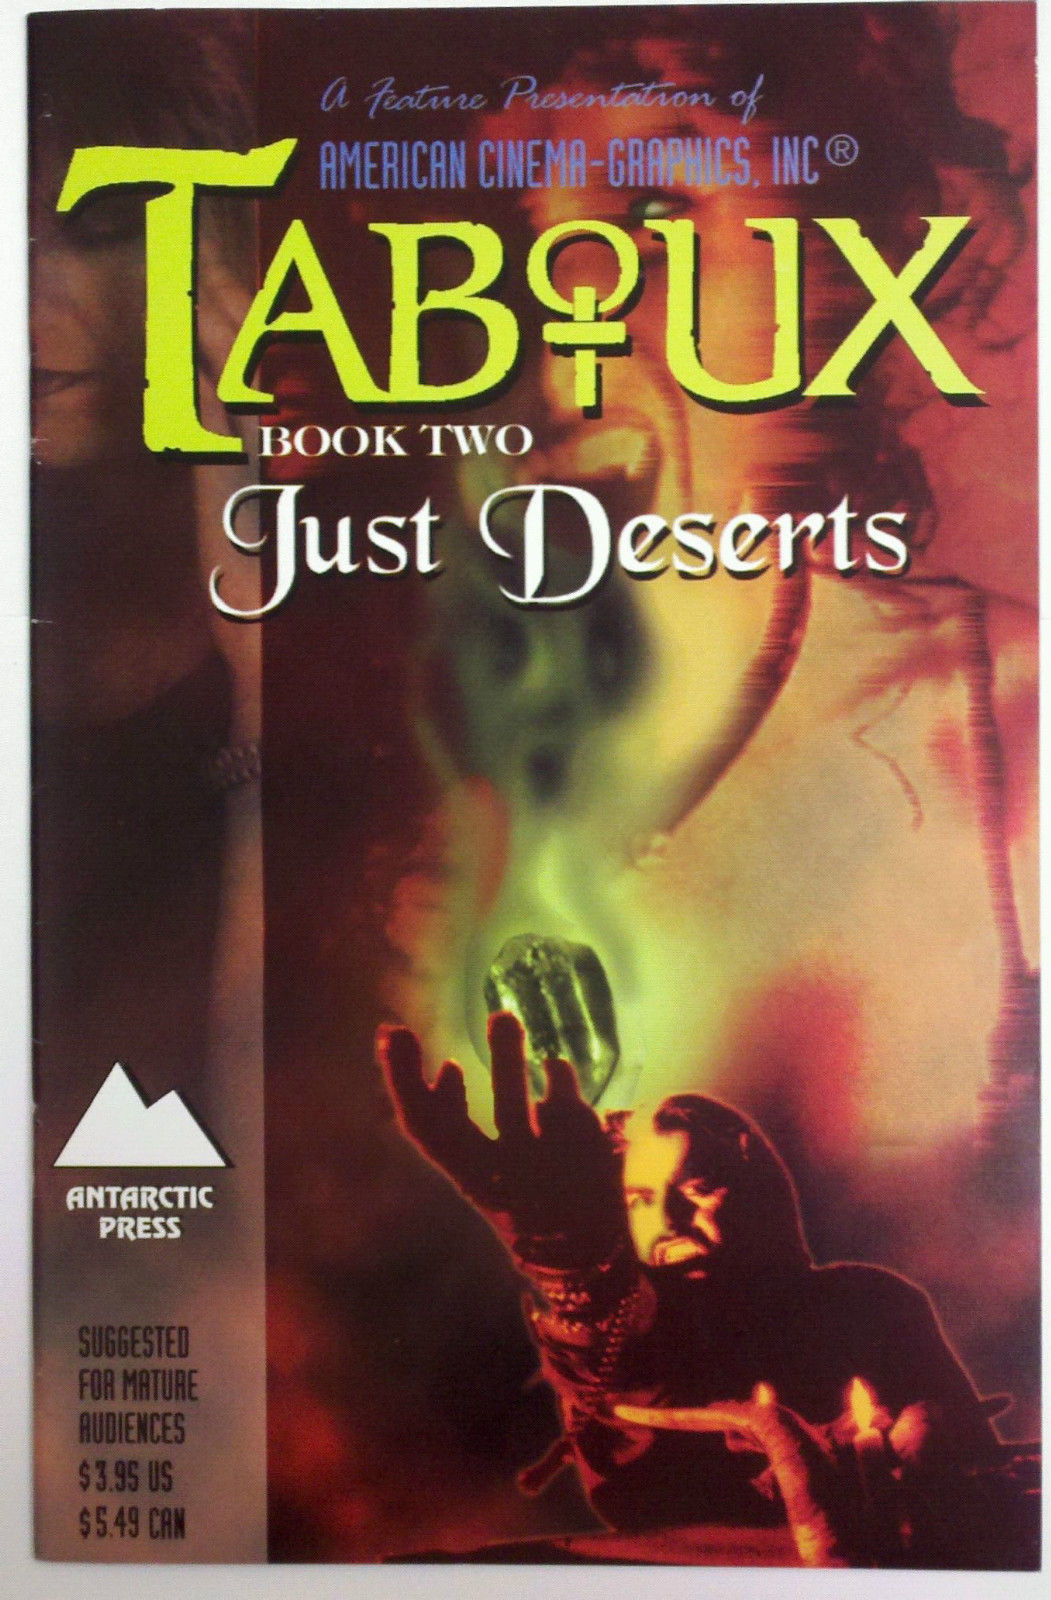 TABOUX BOOK TWO (Antarctic Press, 1996)